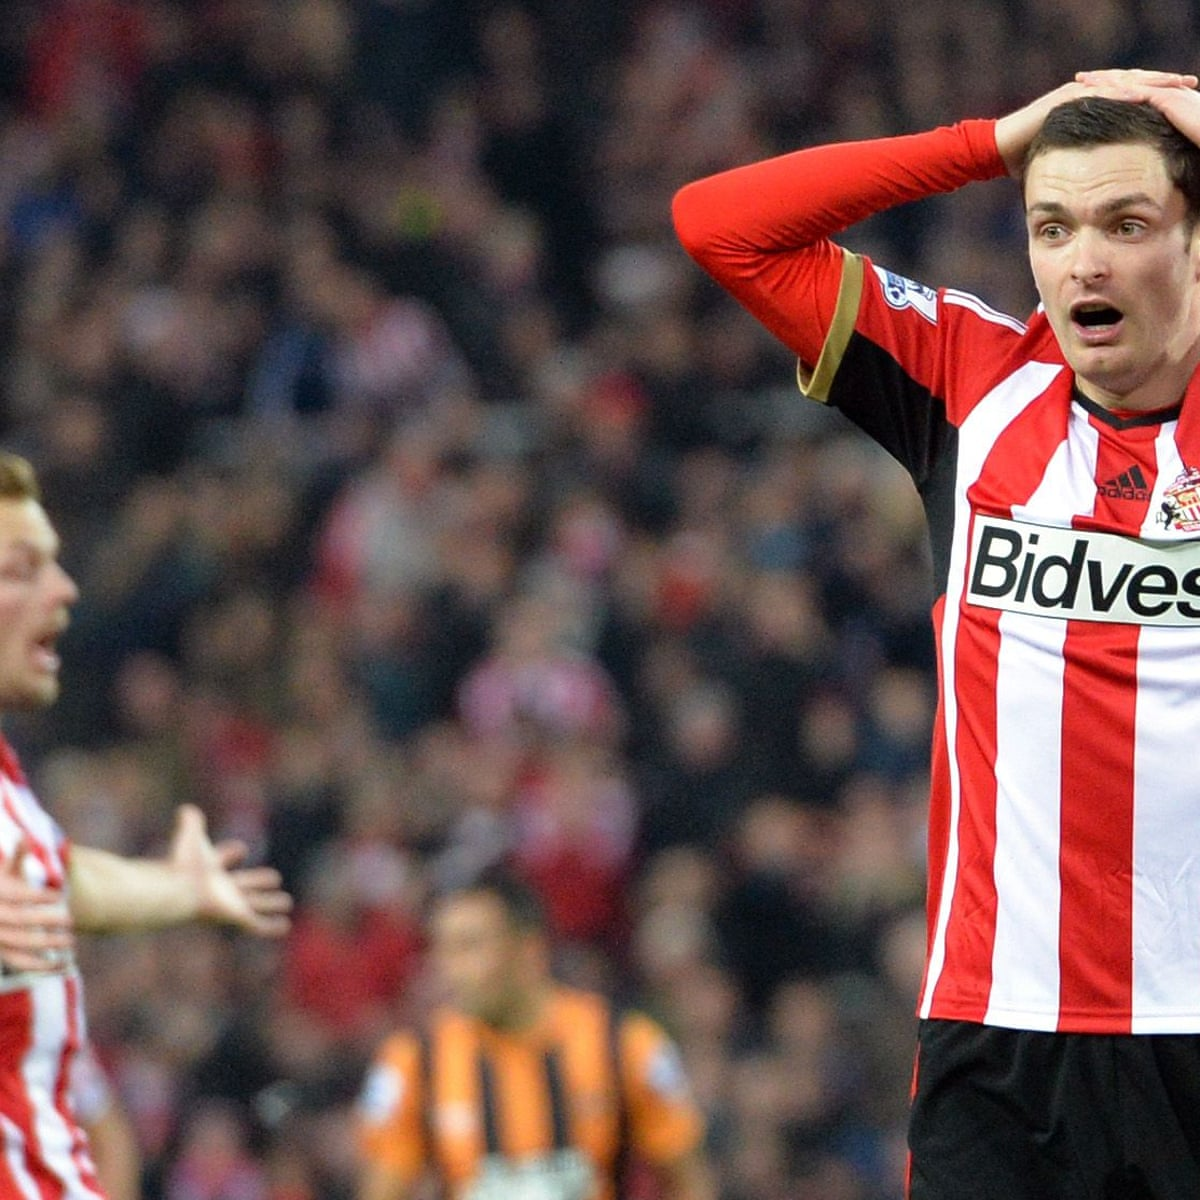 Adam Johnson Coverage Shows Football Has Slipped Its Moral Moorings Football The Guardian